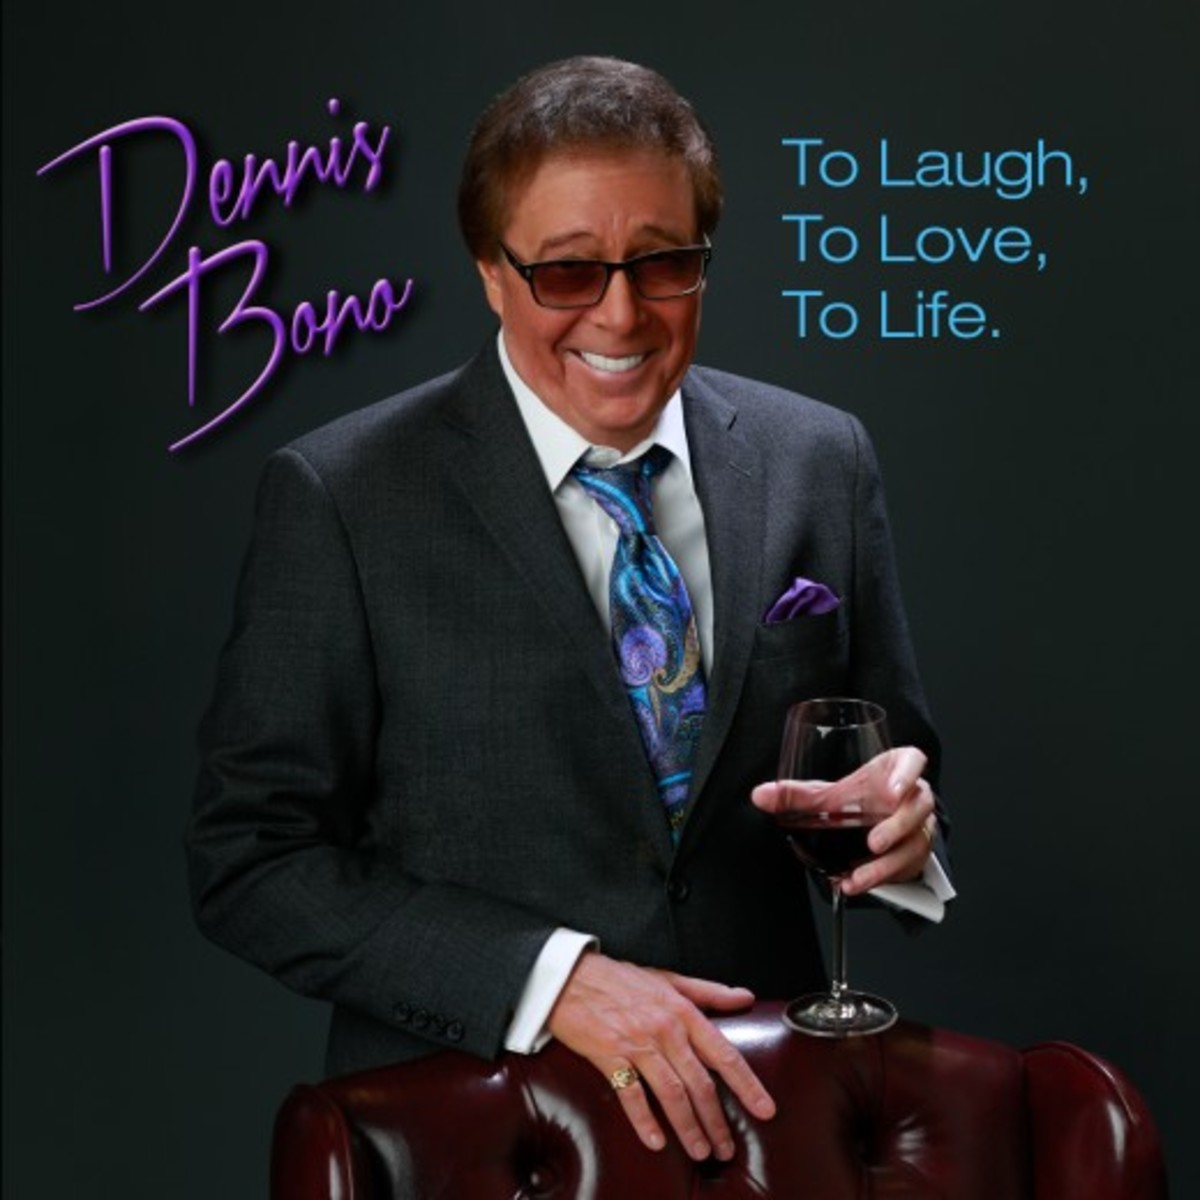 From his CD of the same name, Dennis has won praise for this record.